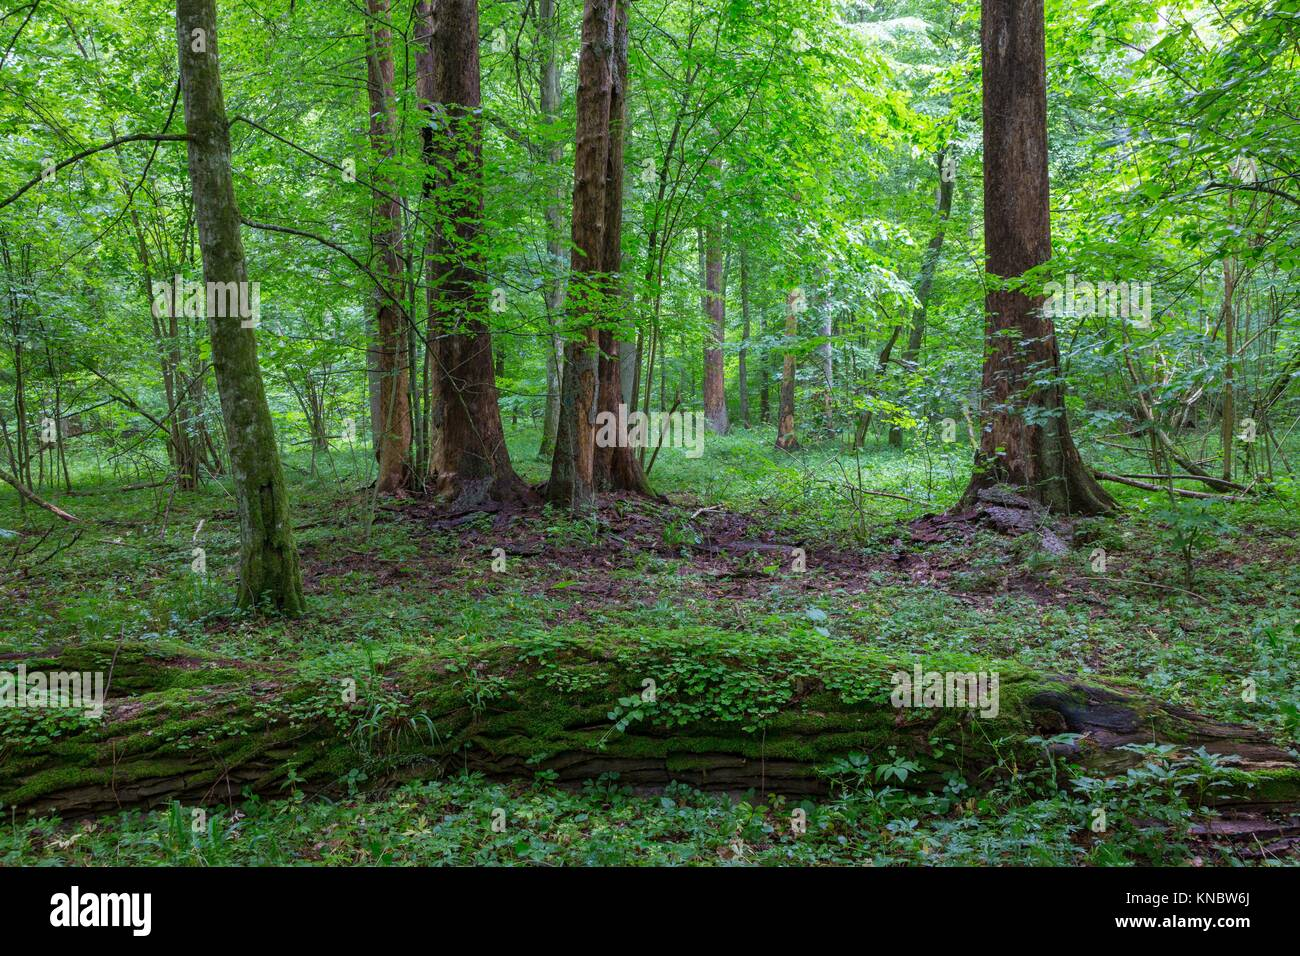 Bark-less dead spruces in old summertime deciduous stand,Bialowieza Forest,Poland,Europe. - Stock Image